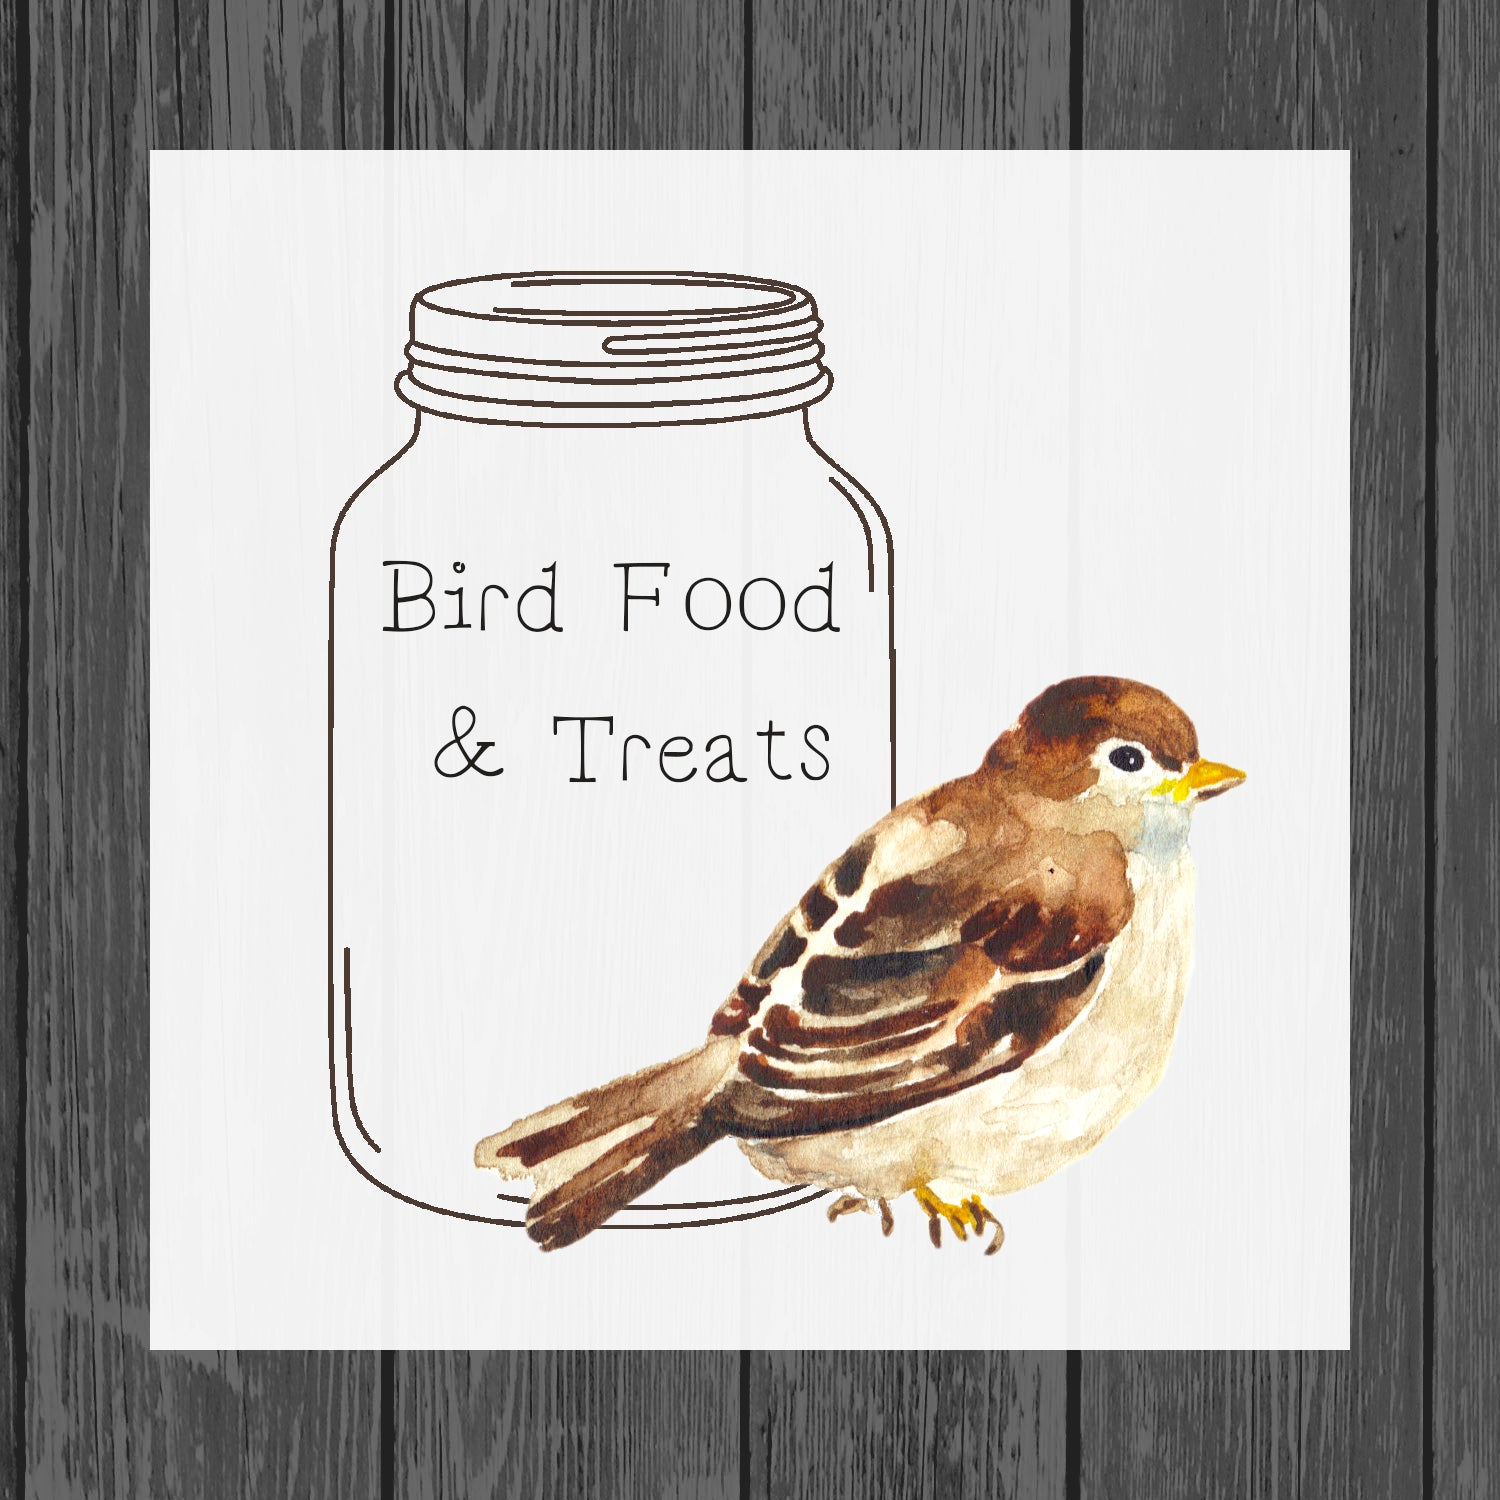 Con-seed-ed - Bird - Bird food - Pet Food - Bird Seed - Birds - Pet Treats - Bird Treats - Bird Treat - Treats - Food - Organic - Hermie's Kitchen